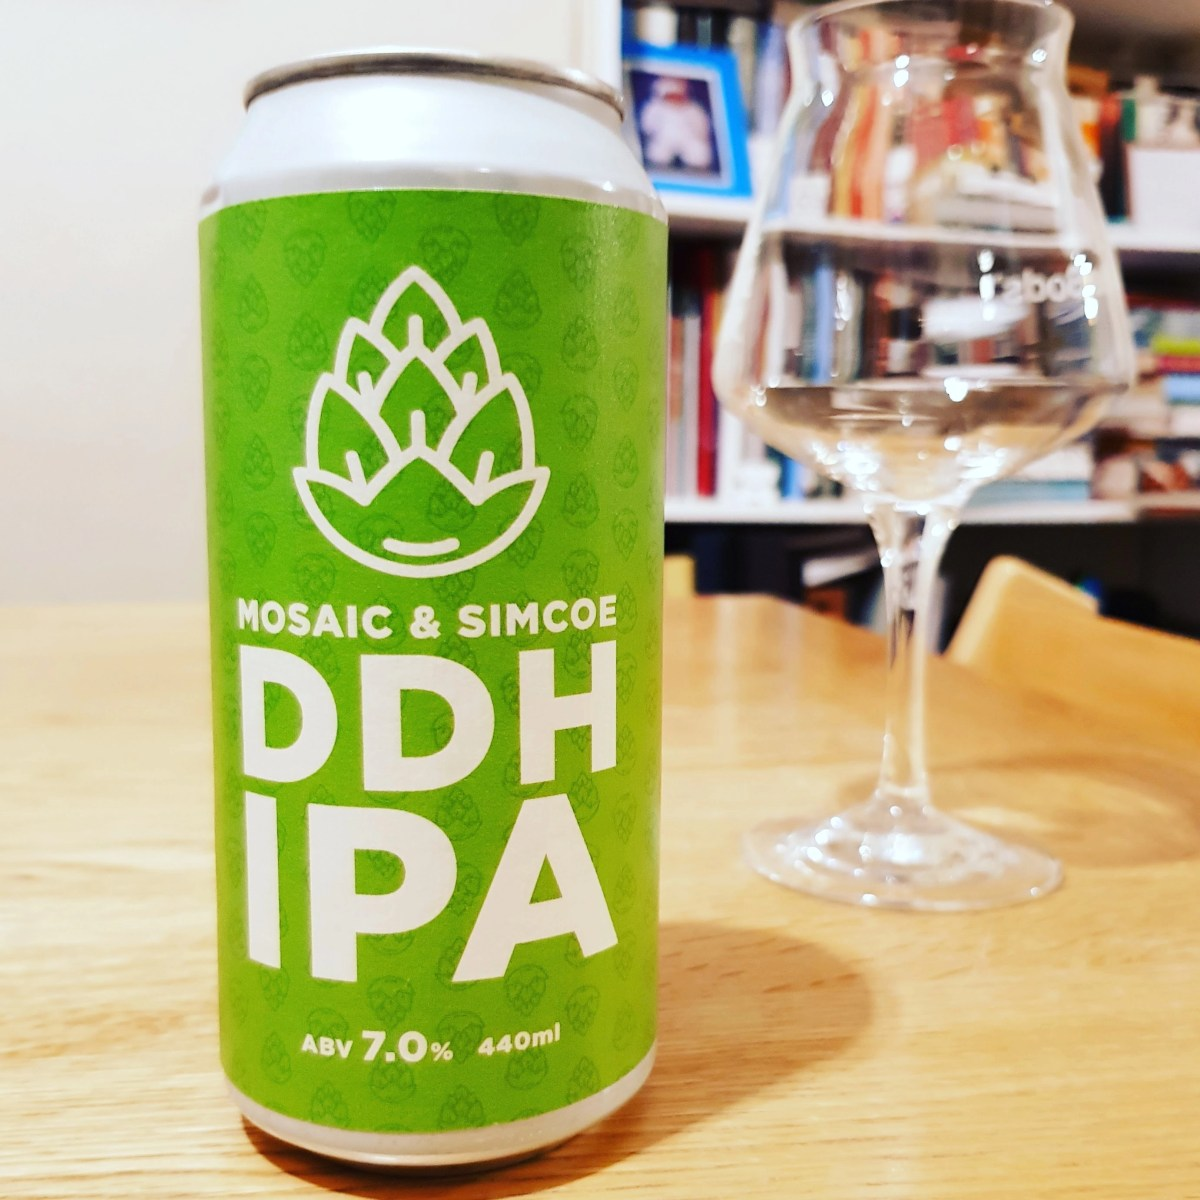 Hop Stuff Brewery, Mosaic and Simcoe DDH IPA